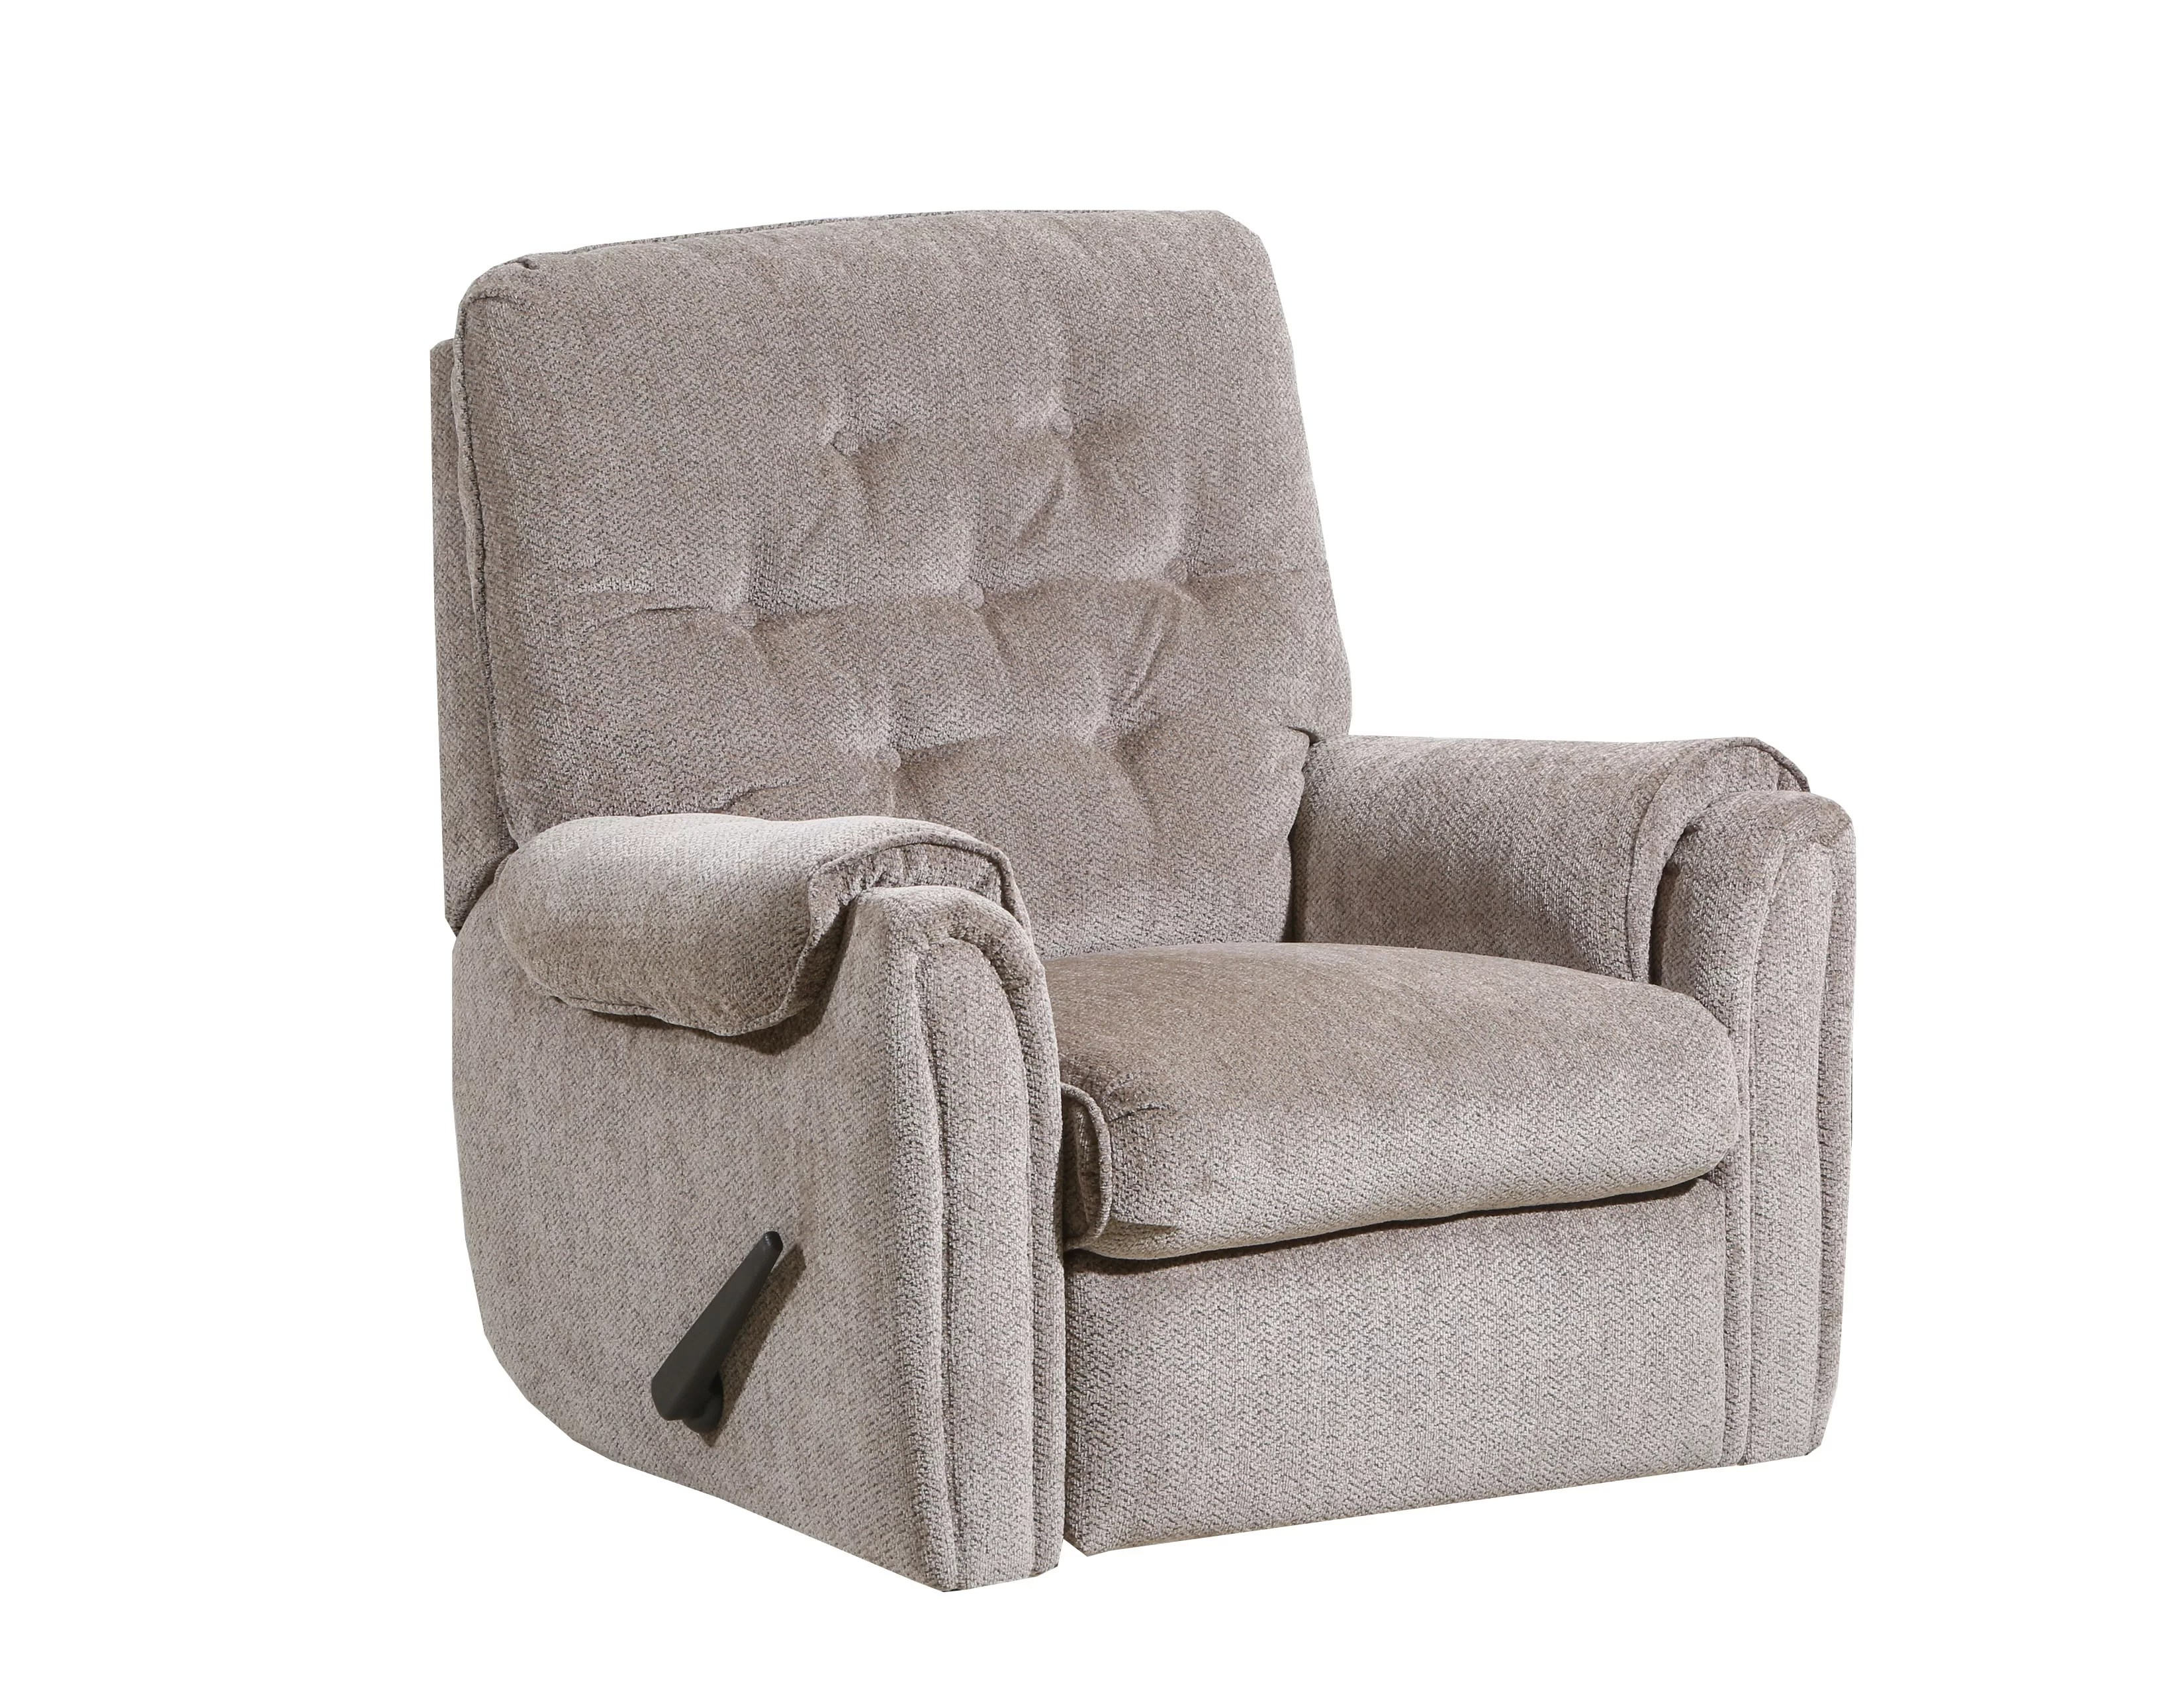 Swivel Recliner Chairs Whammy Manual Swivel Recliner